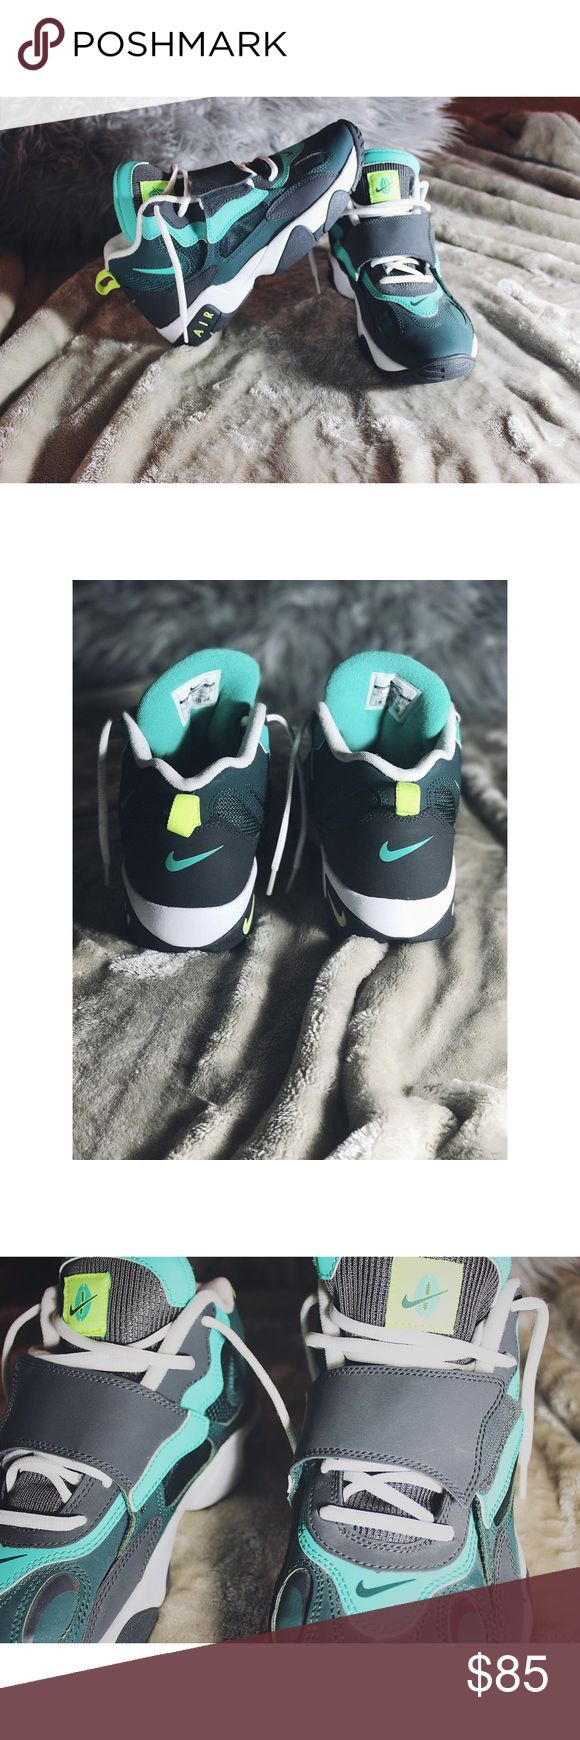 Nike Air Turf - Size 7 Boys (Women's 9) Nike Turf Line 🔥 ... These are very comfortable and the colors makes this shoe so dope. 👣 Runs true to size. Nike Shoes Sneakers